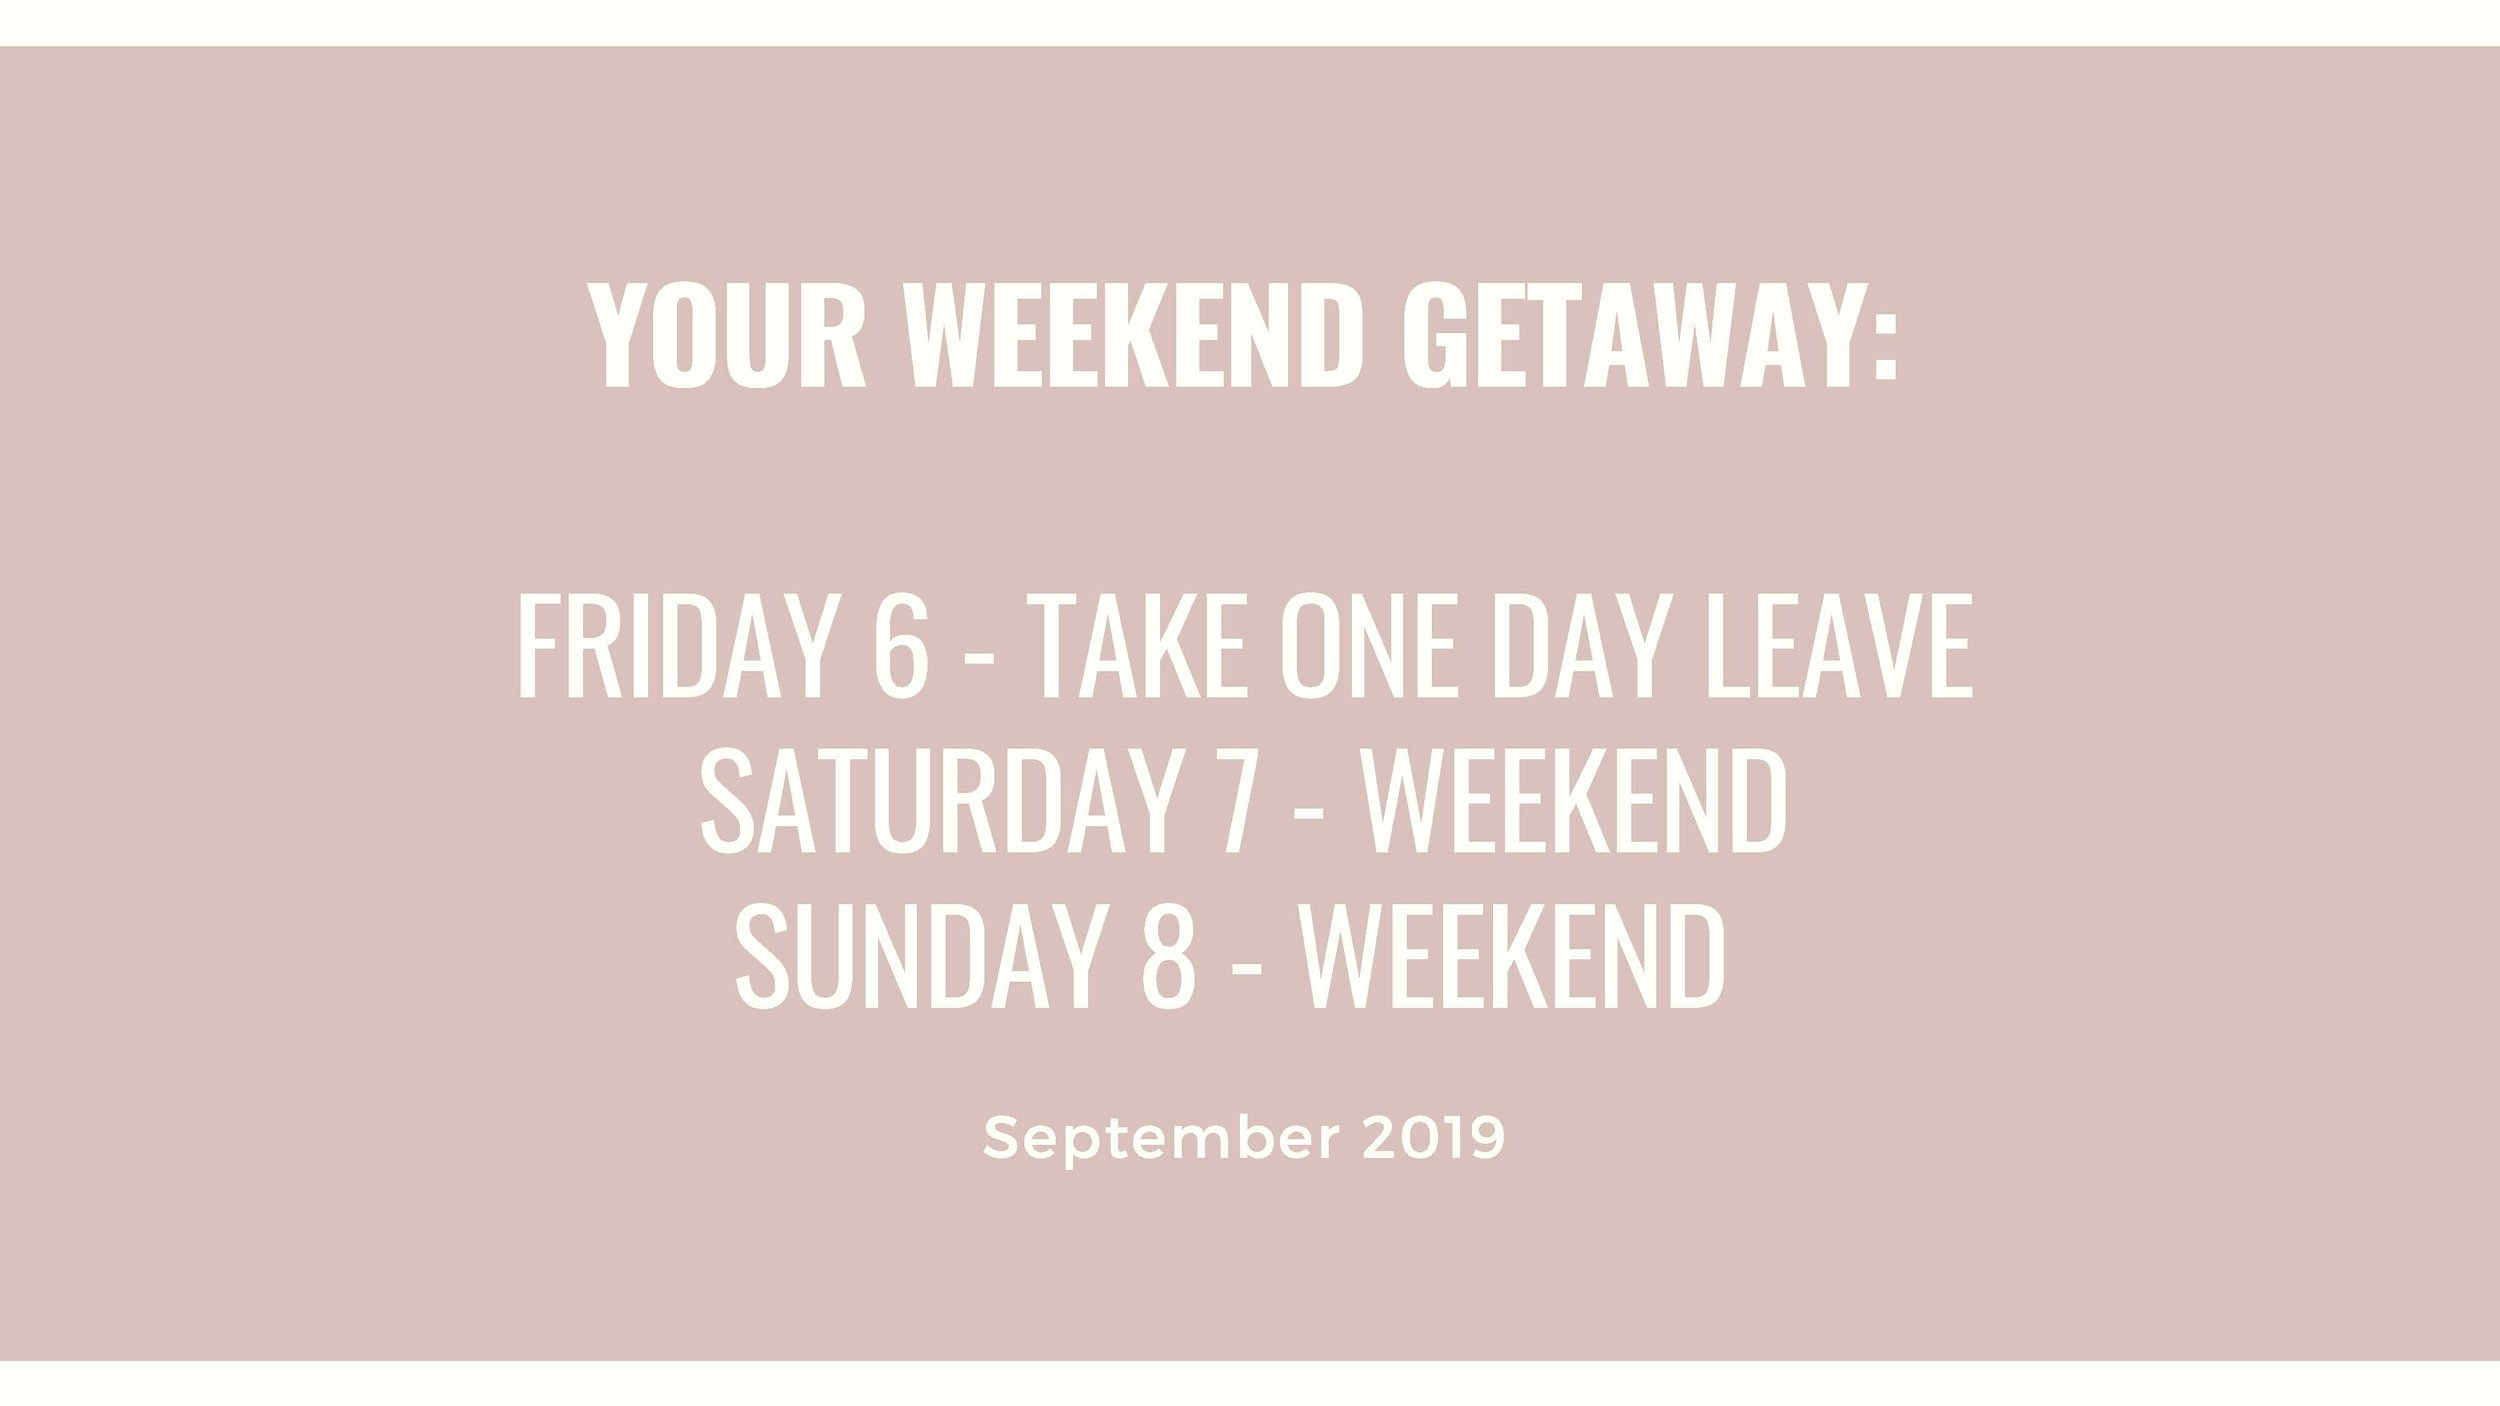 September weekend retreat